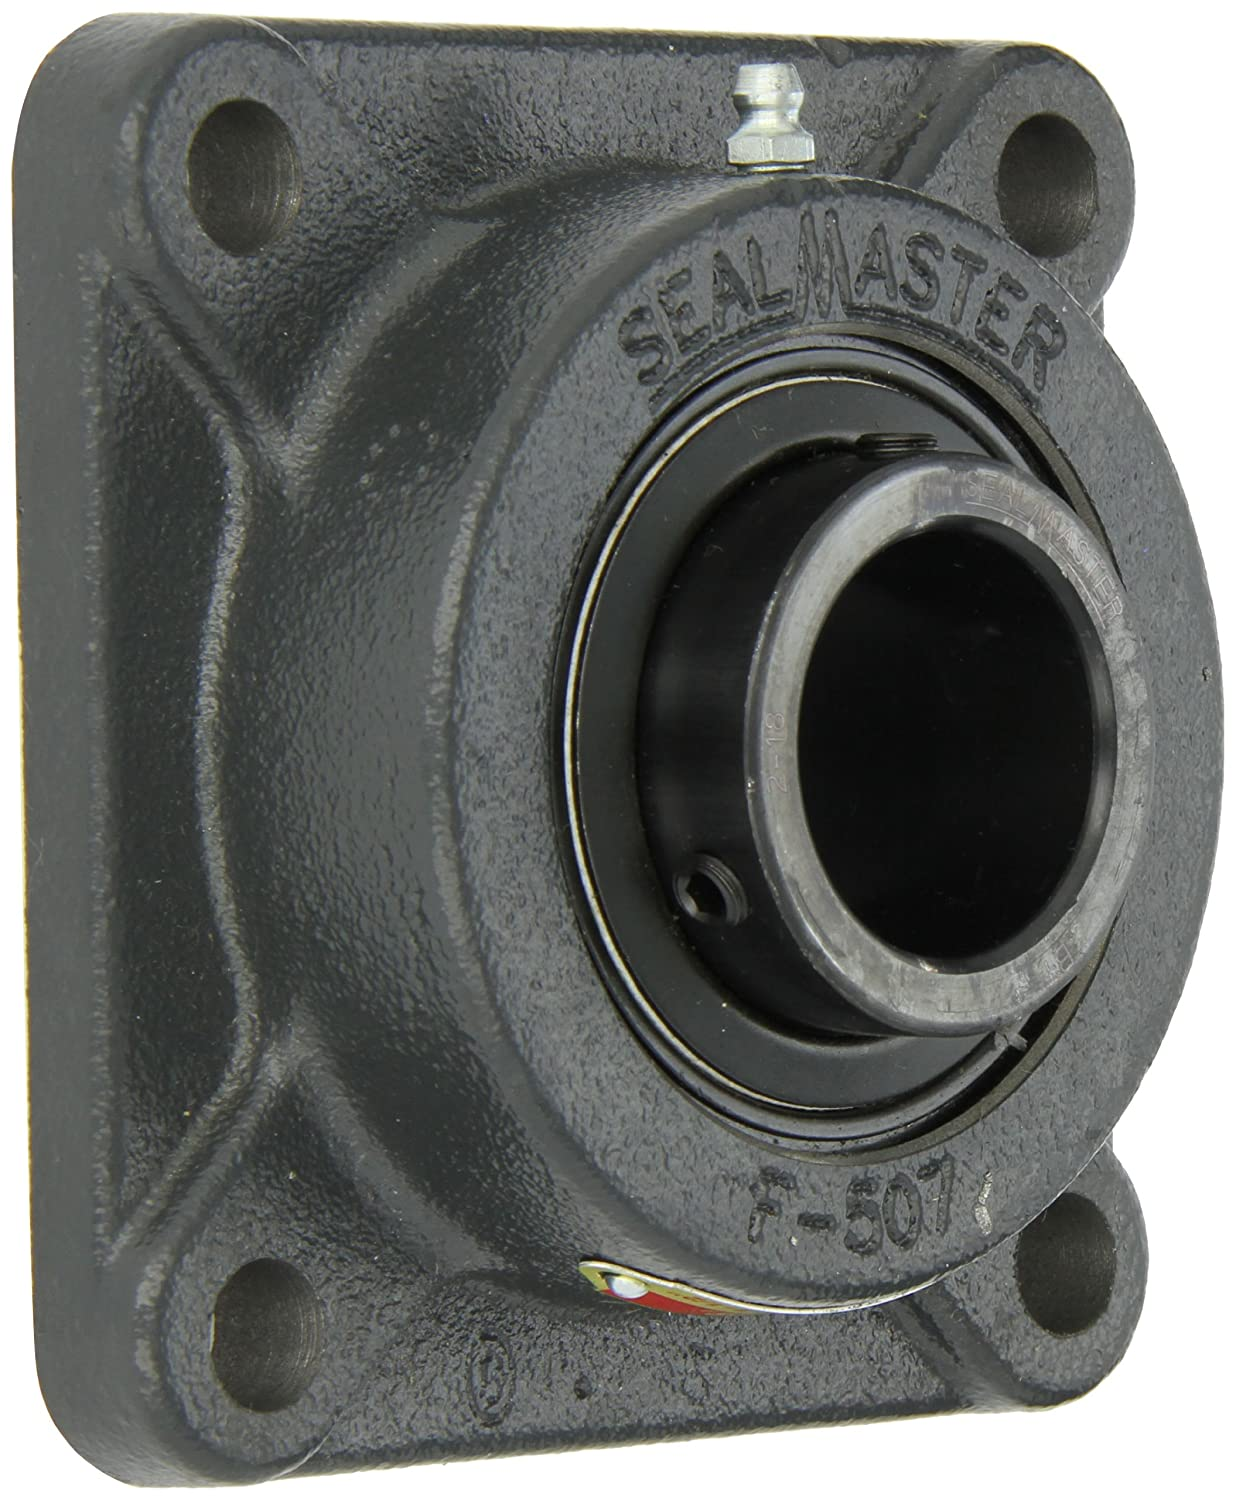 5-1//8 Overall Length 1-1//2 Bore Felt Seals 4 Bolt Regreasable Setscrew Locking Collar Cast Iron Housing Sealmaster SF-24 Standard Duty Flange Unit 9//16 Flange Height /±2 Degrees Misalignment Angle 4 Bolt Hole Spacing Width